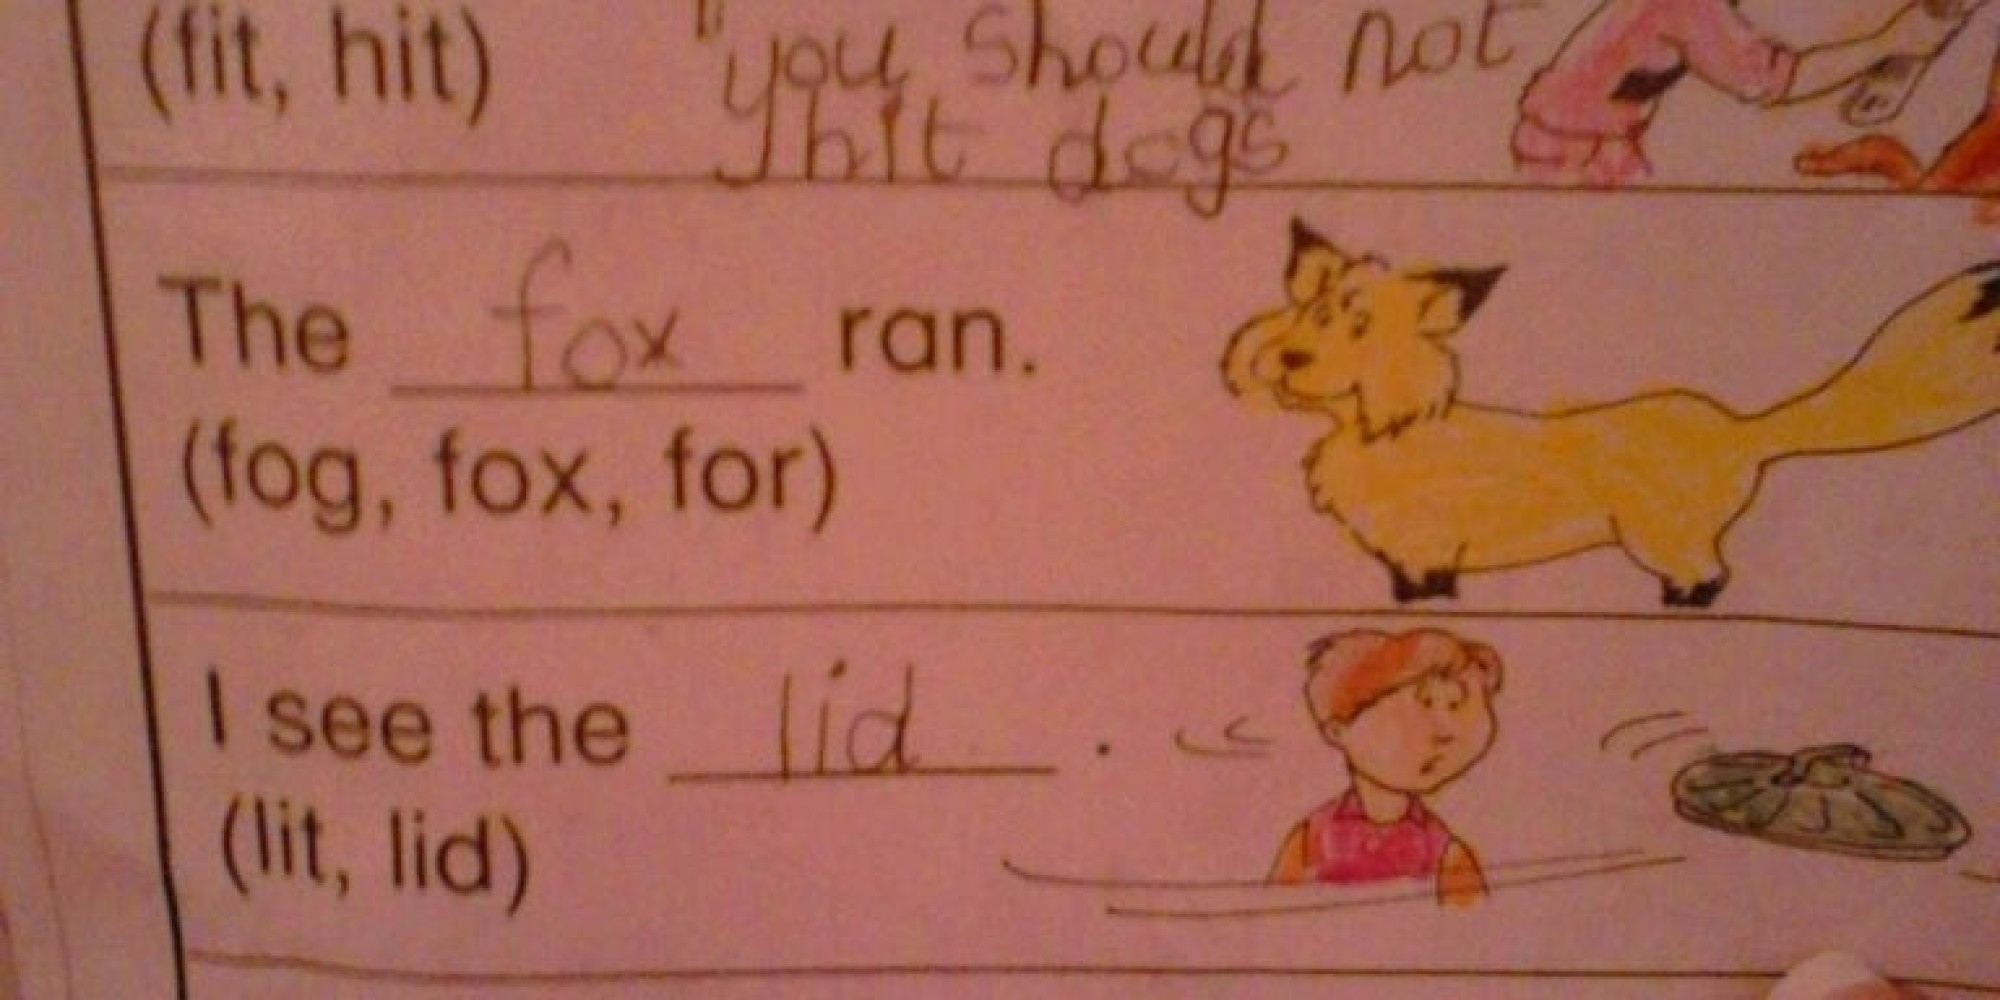 21 Kids Who Got The Answer Wrong But Deserve An A For